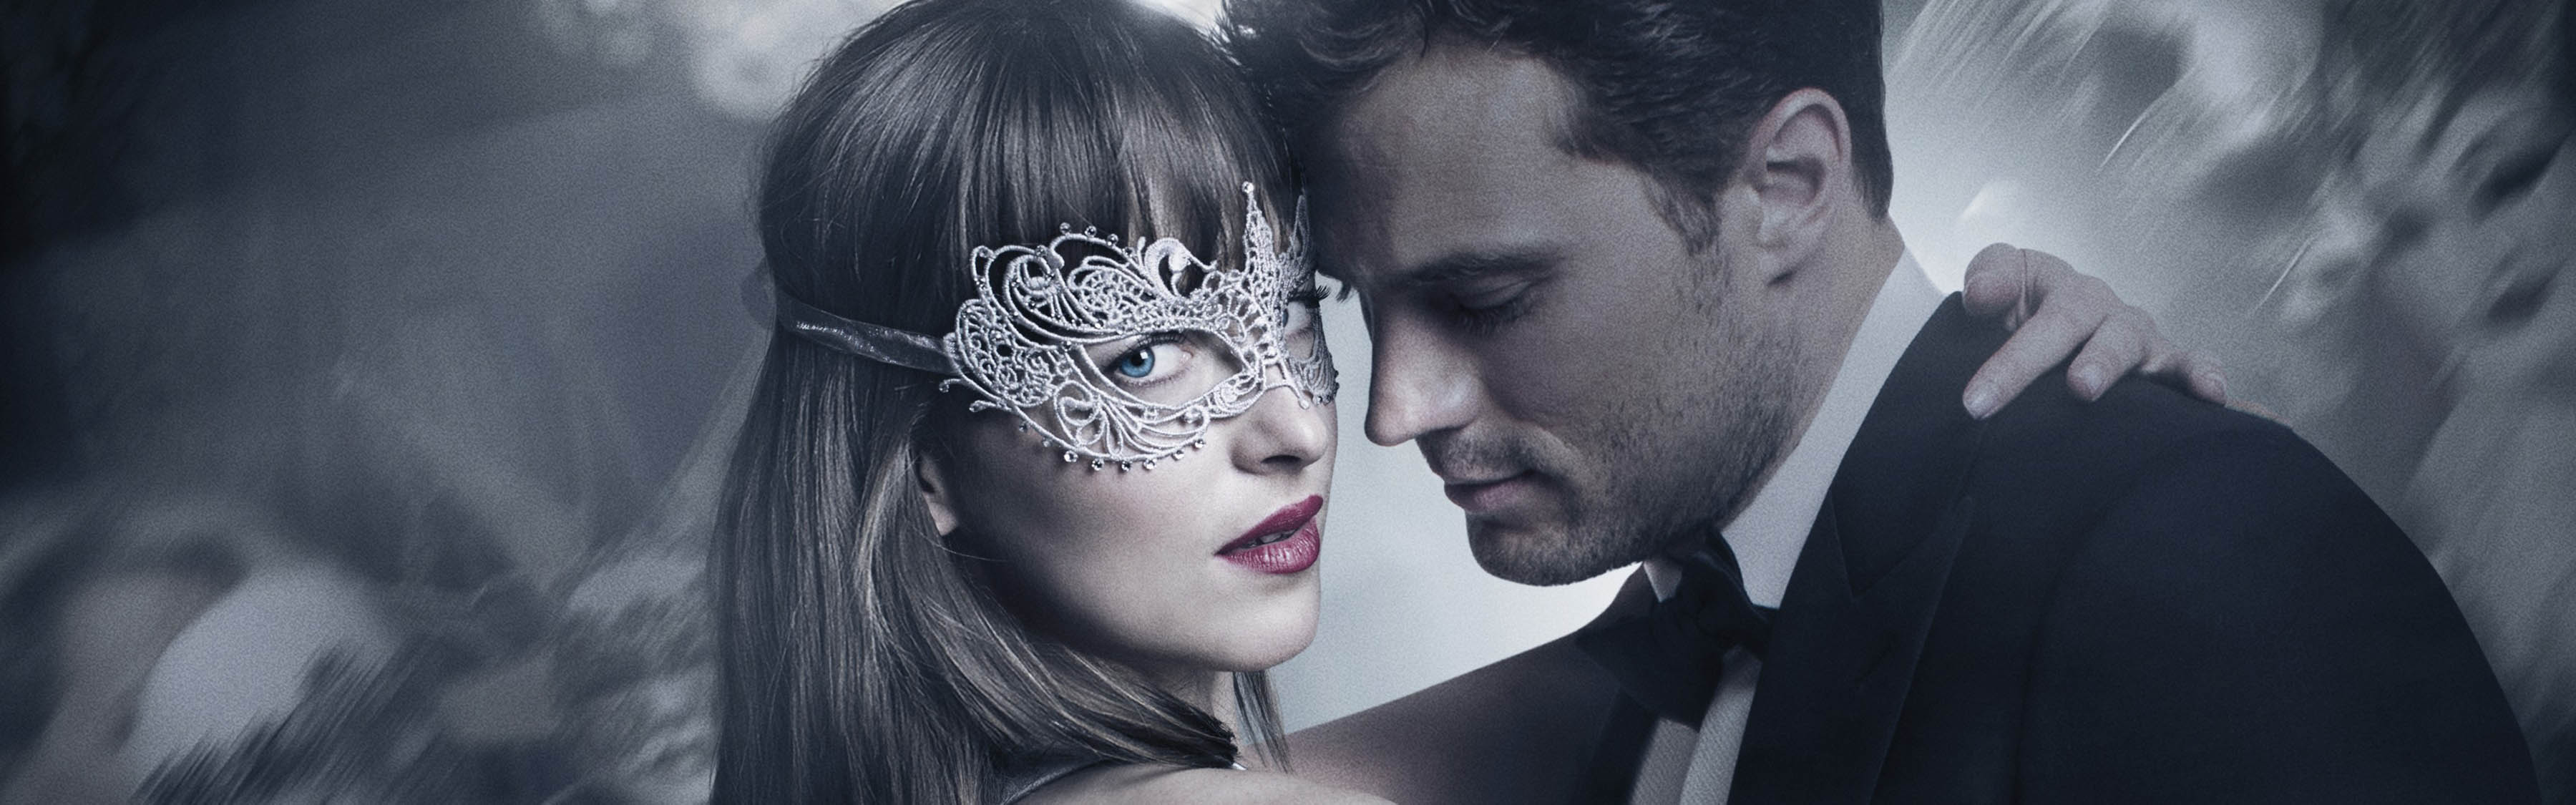 fifty-shades-darker-3600x2161-dakota-johnson-jamie-dornan-best-movies-12746